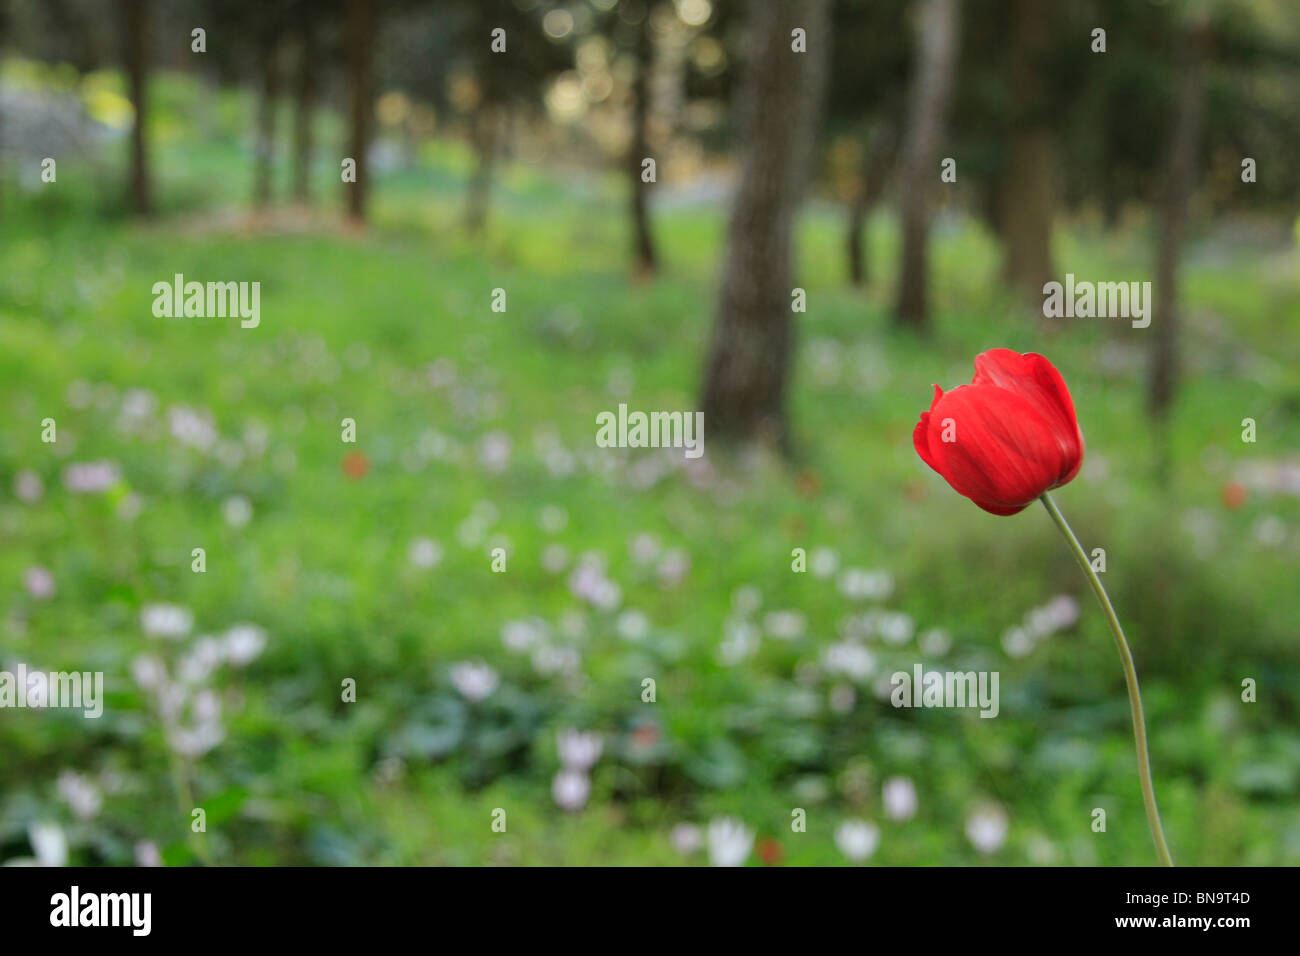 Israel, Anemone and Cyclamen flowers in Koach forest - Stock Image